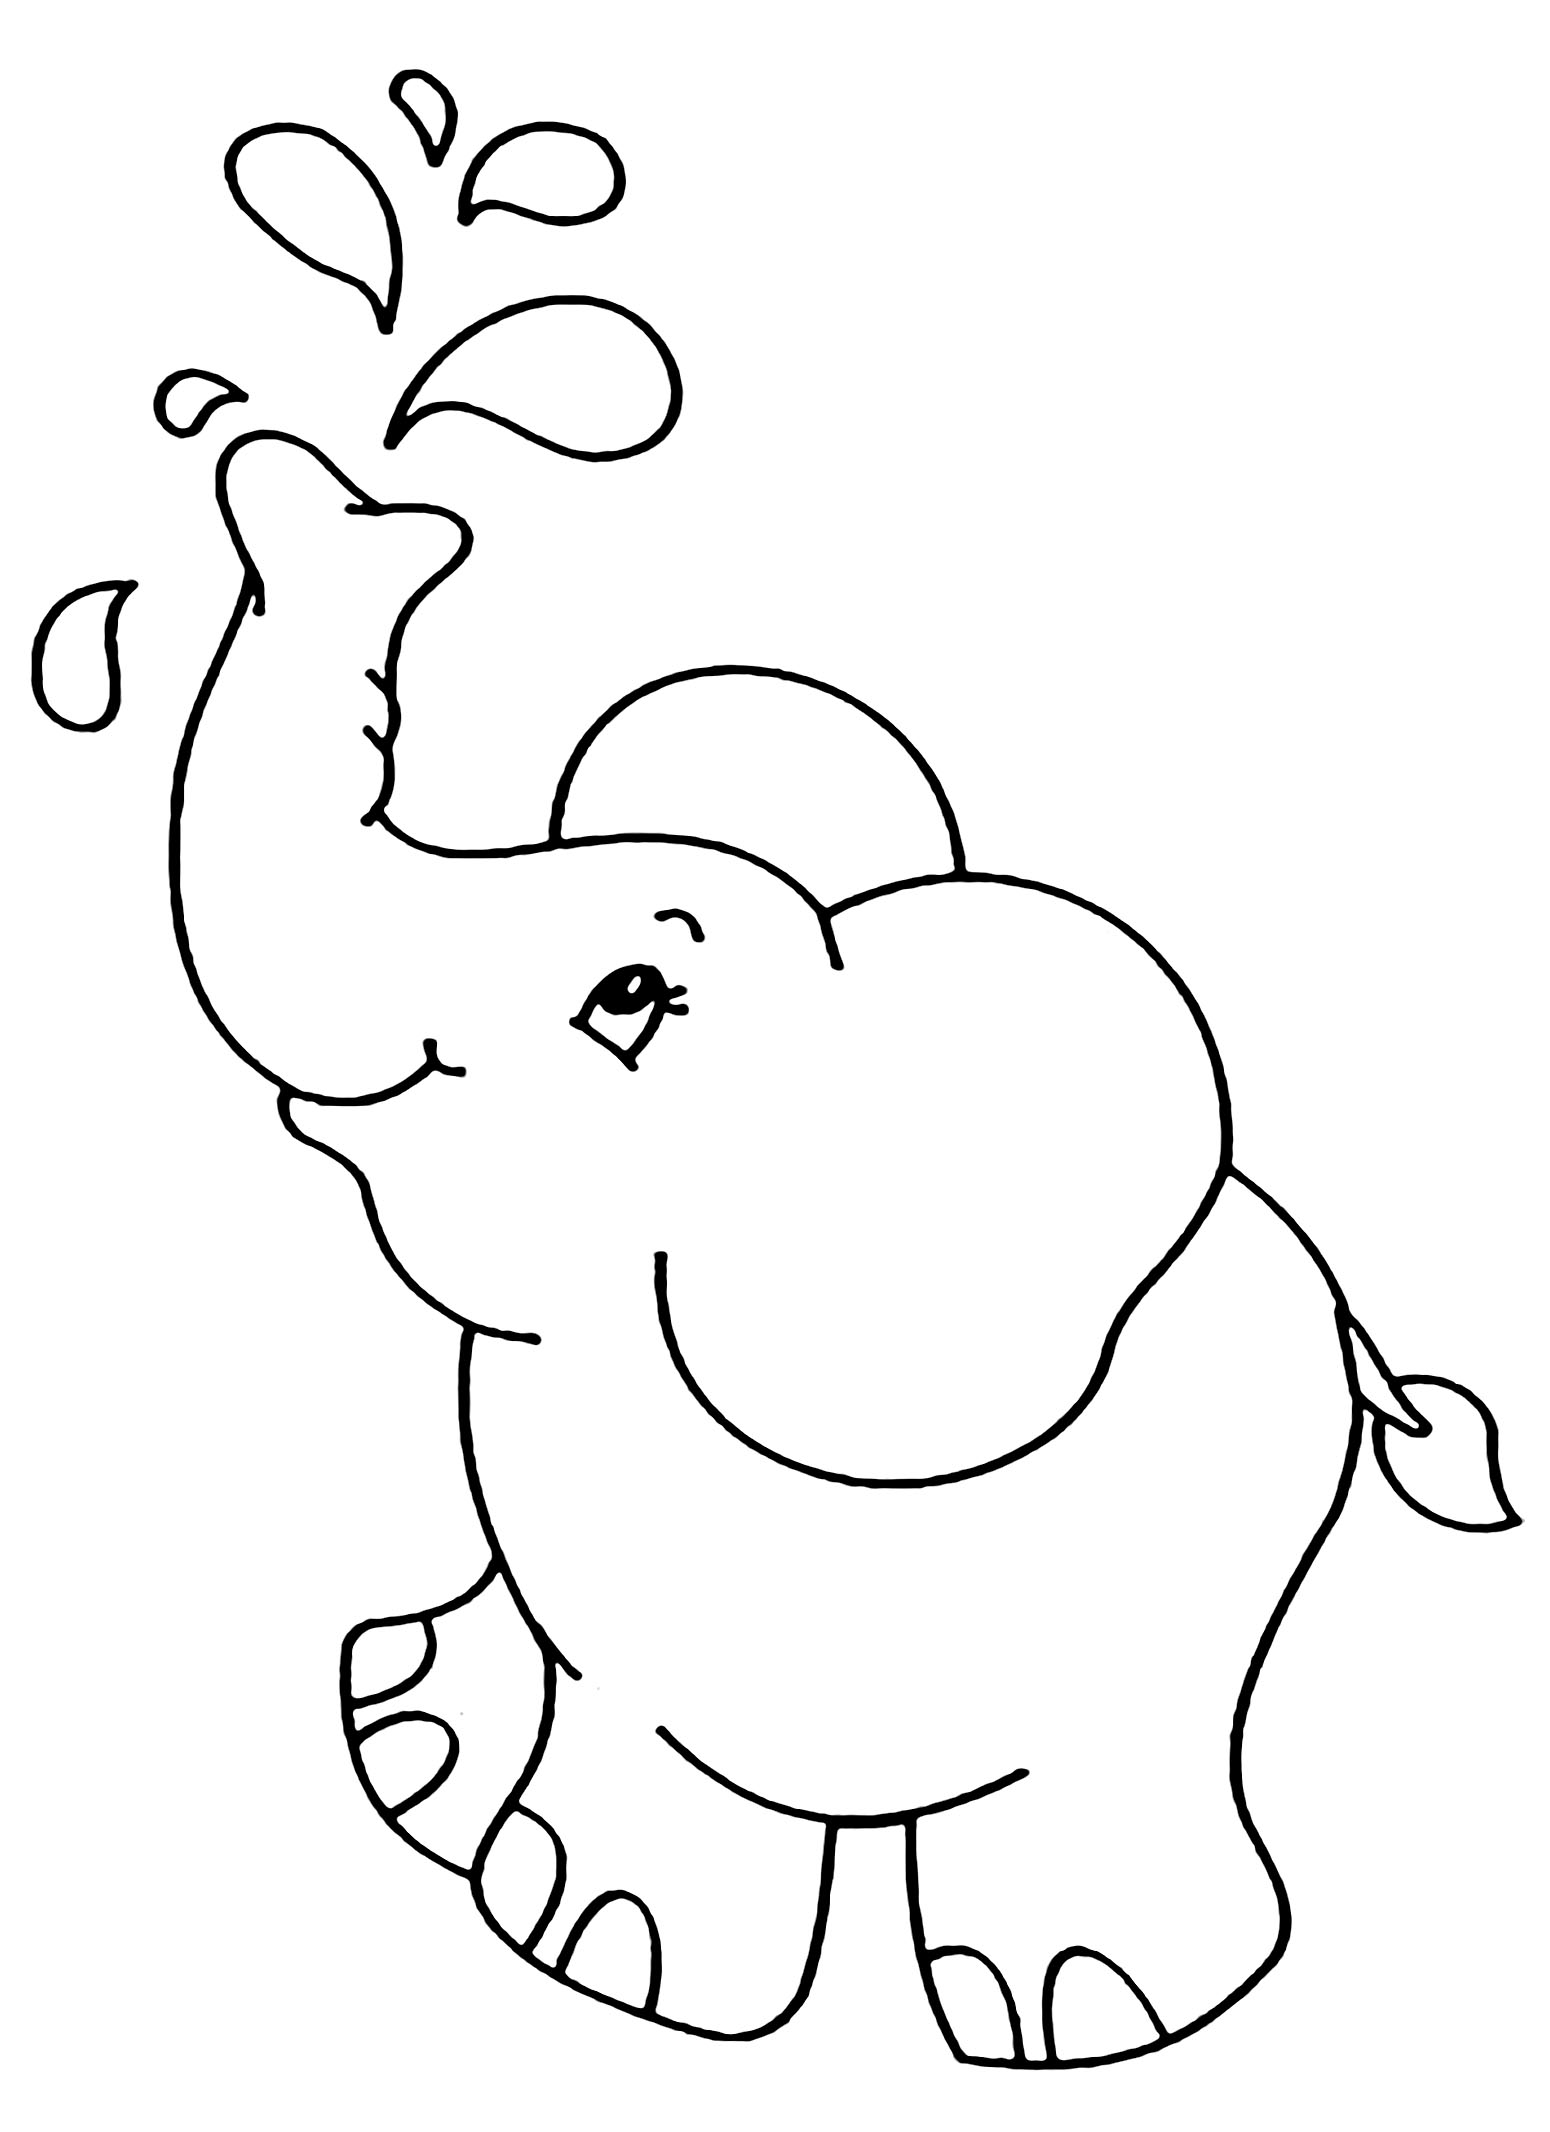 colouring picture of elephant elephants to print for free elephants kids coloring pages of elephant colouring picture